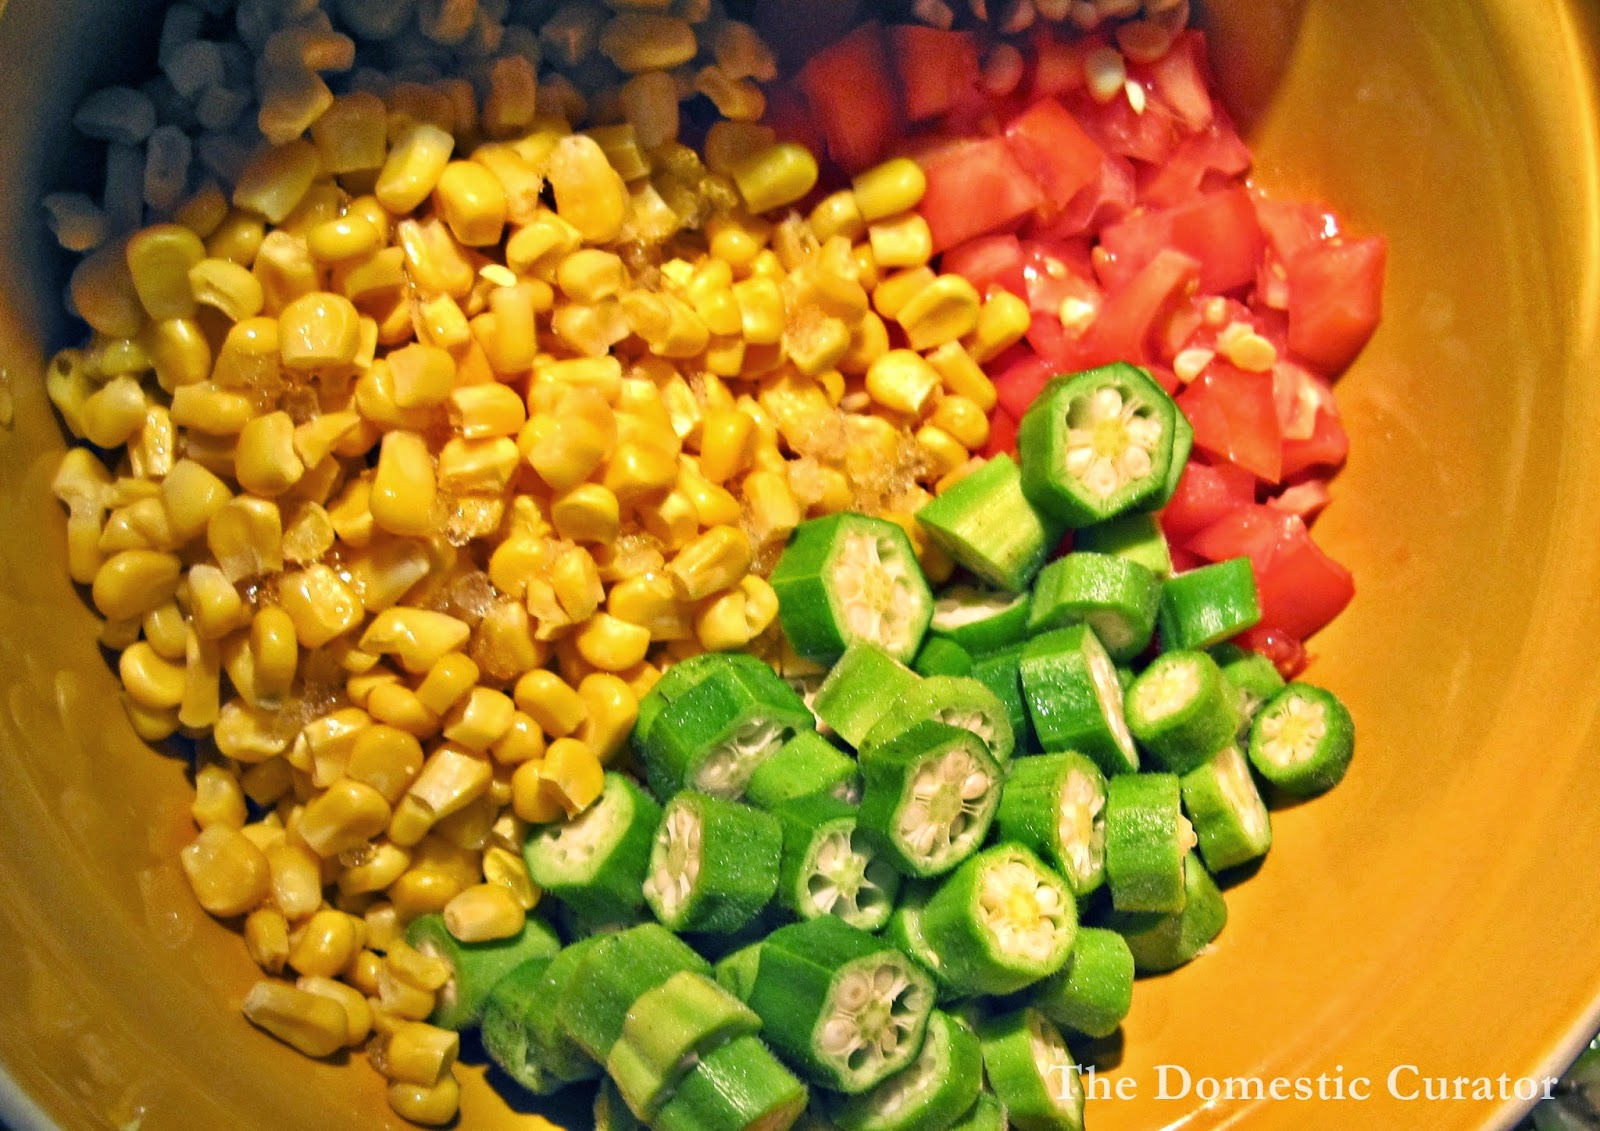 The Domestic Curator: Okra and Corn Maque Choux